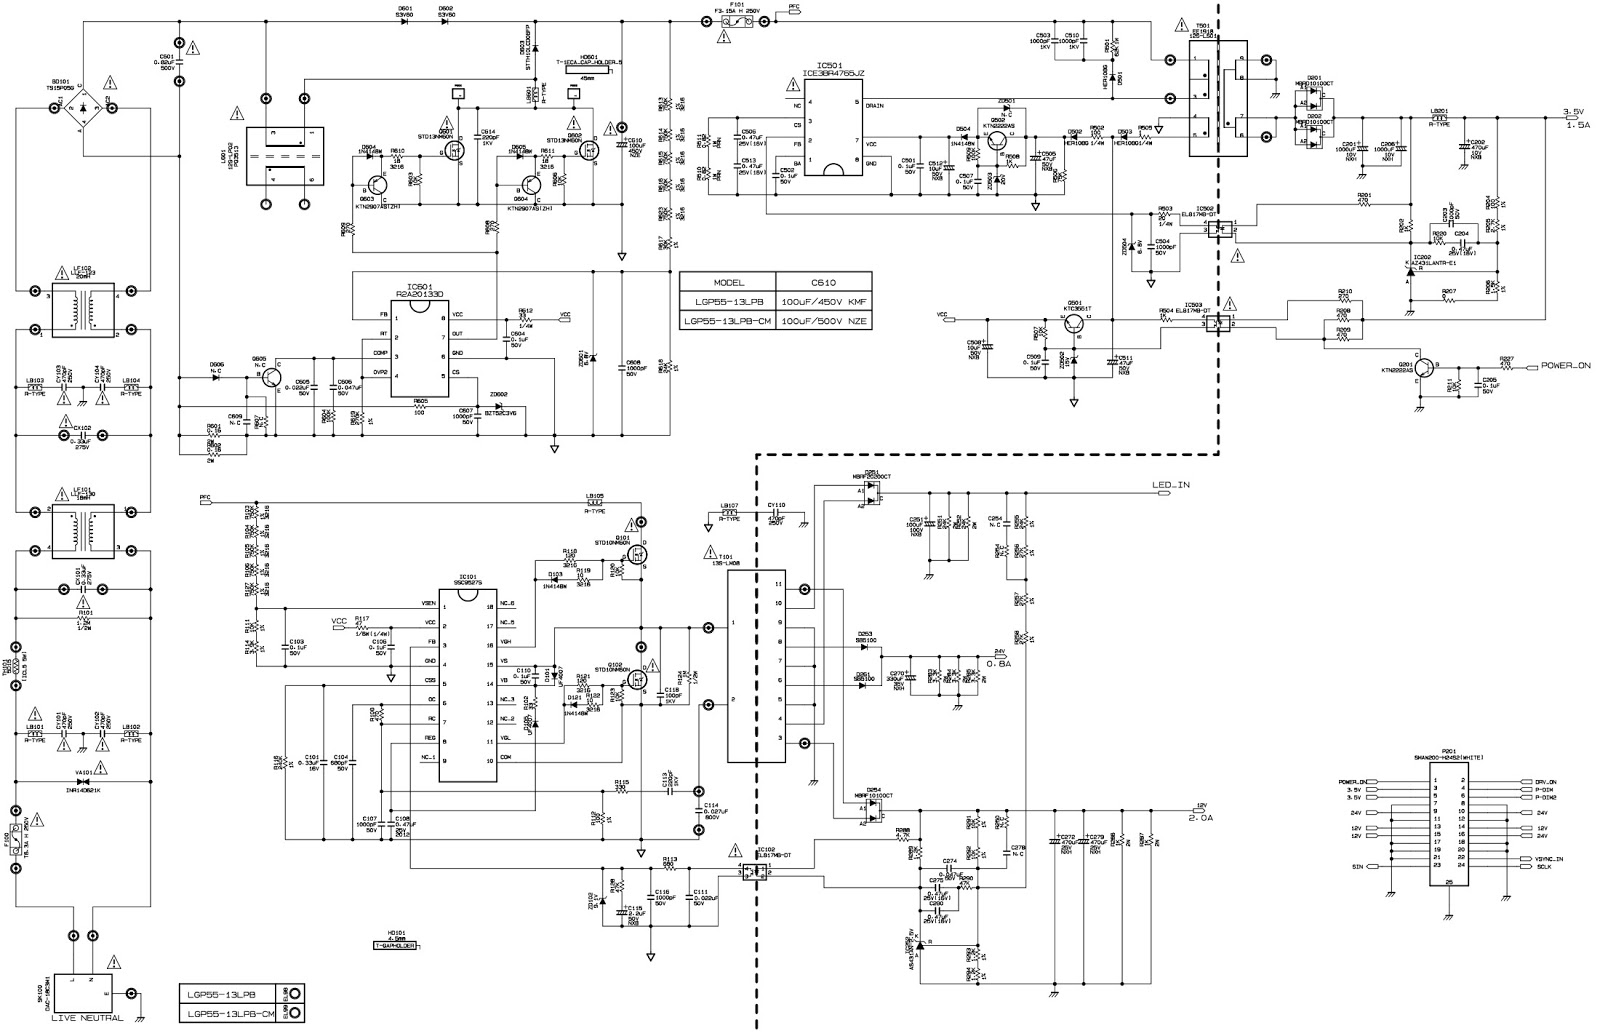 lg eay62811001 power supply board circuit diagram schematic and lg led tv schematic diagram [ 1600 x 1036 Pixel ]